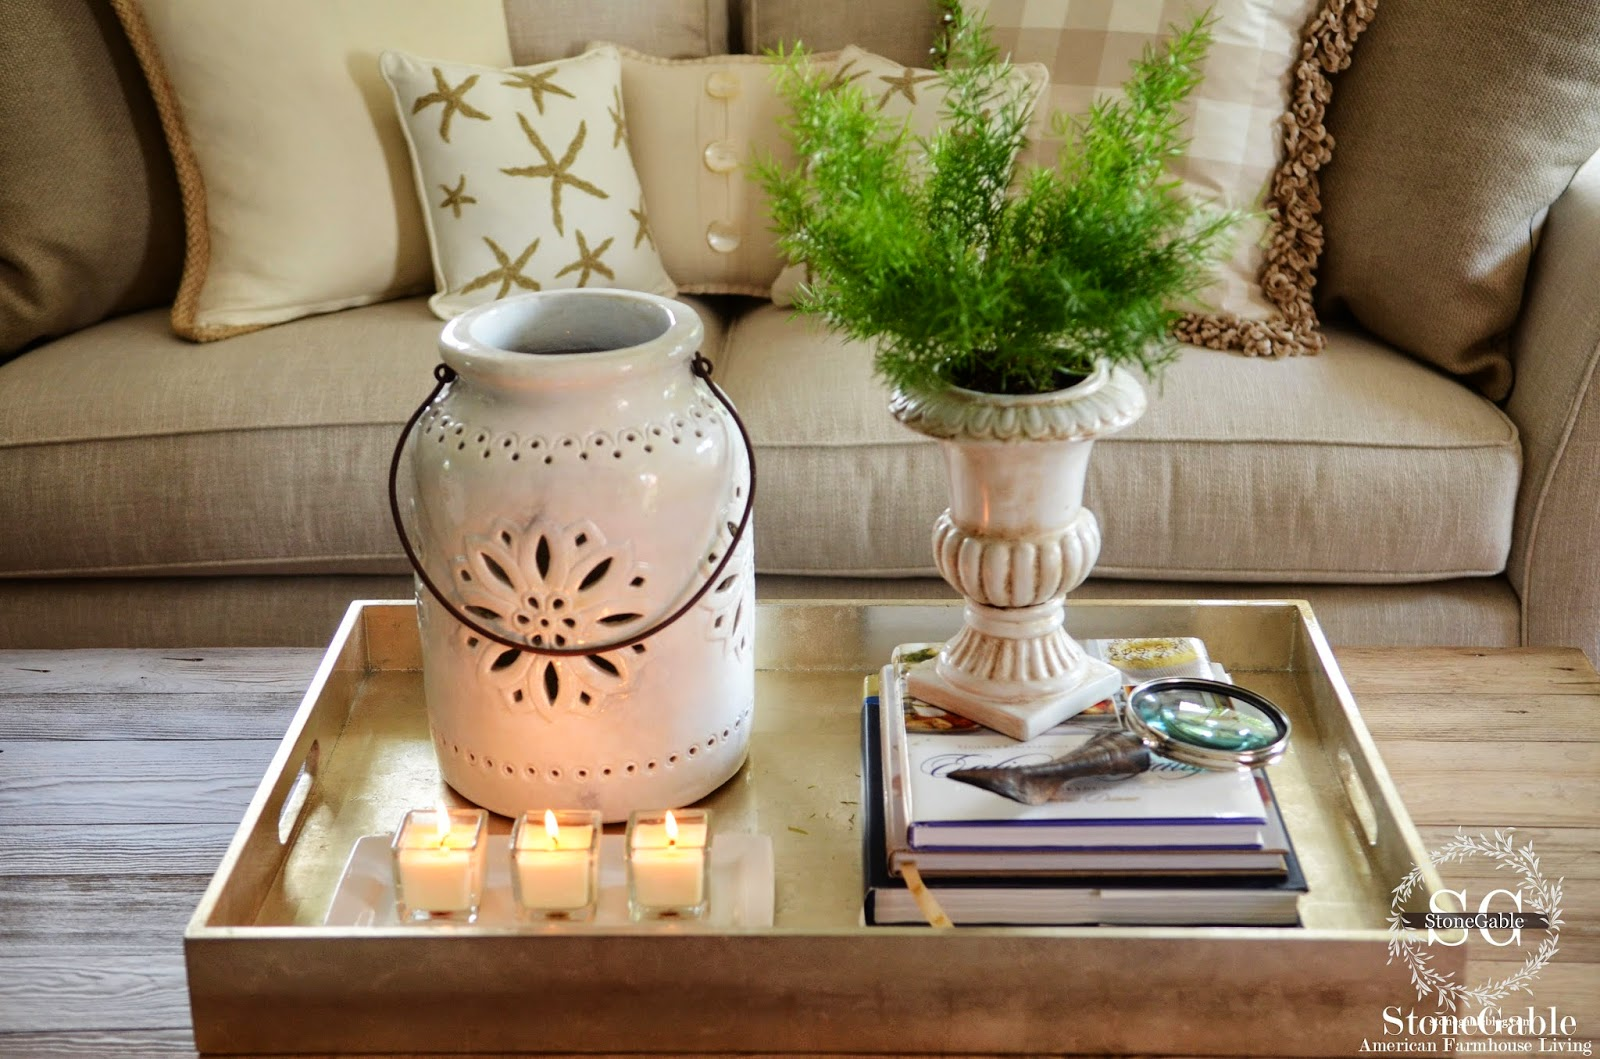 5 tips to style a coffee table like a pro stonegable for Decorations for a home